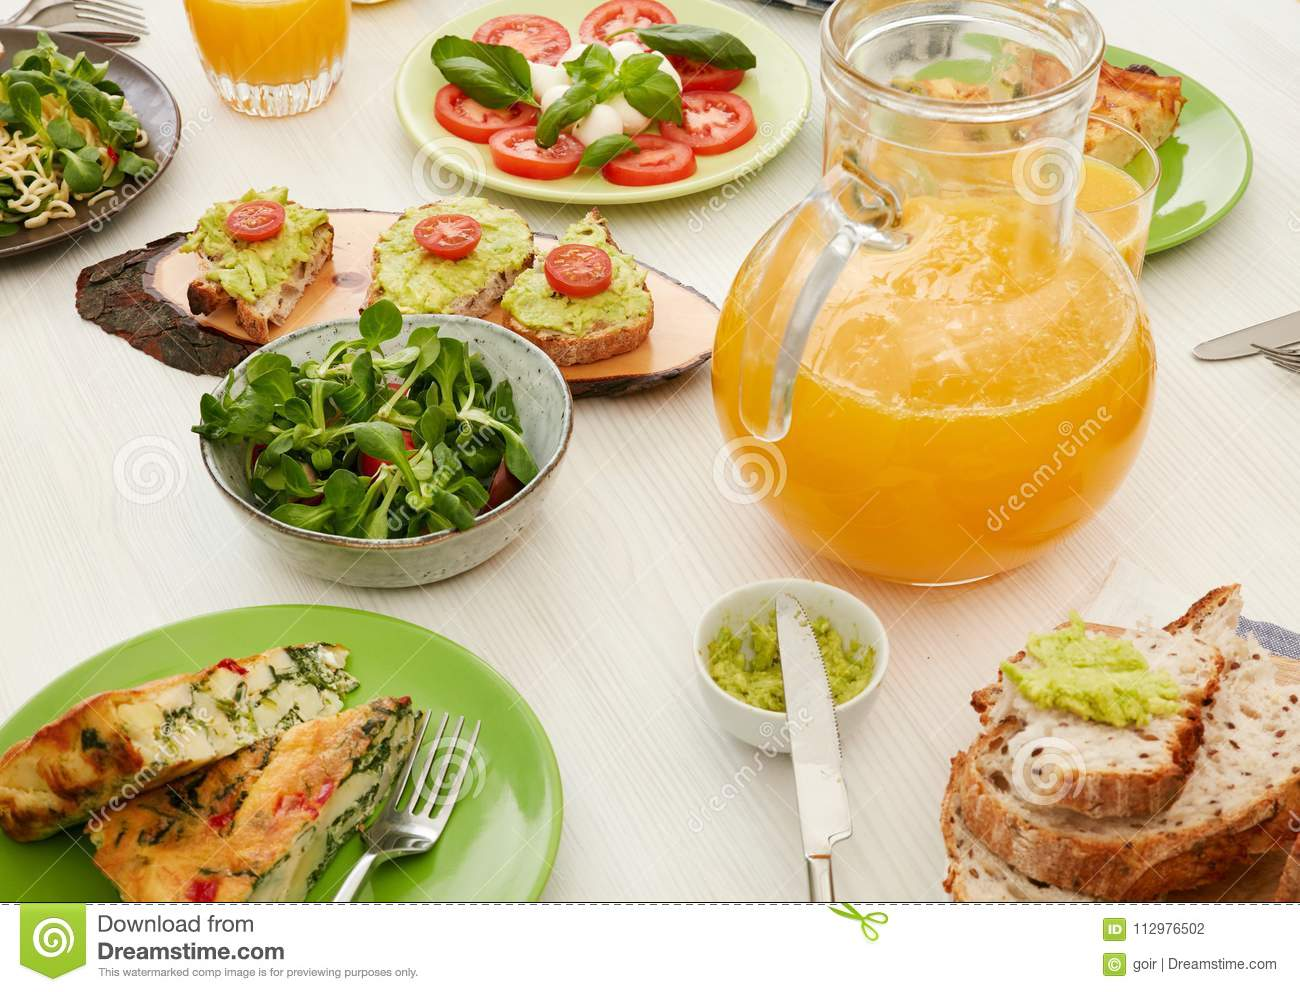 Healthy food on table